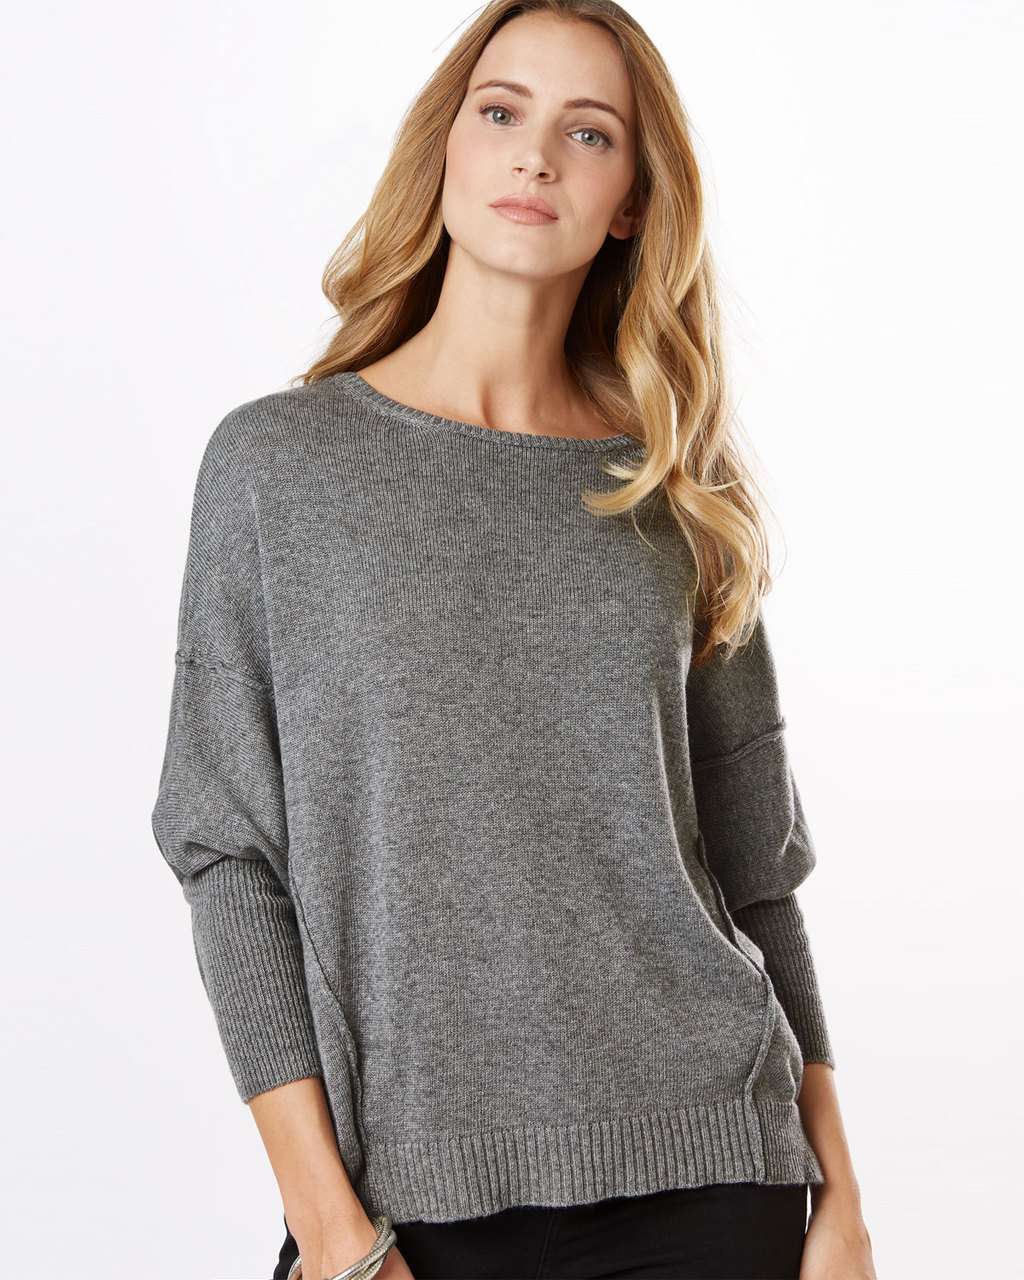 Ebony Exposed Seam Jumper - neckline: round neck; sleeve style: dolman/batwing; pattern: plain; style: standard; predominant colour: mid grey; occasions: casual, creative work; length: standard; fibres: wool - mix; fit: loose; sleeve length: long sleeve; texture group: knits/crochet; pattern type: knitted - fine stitch; season: s/s 2016; wardrobe: basic